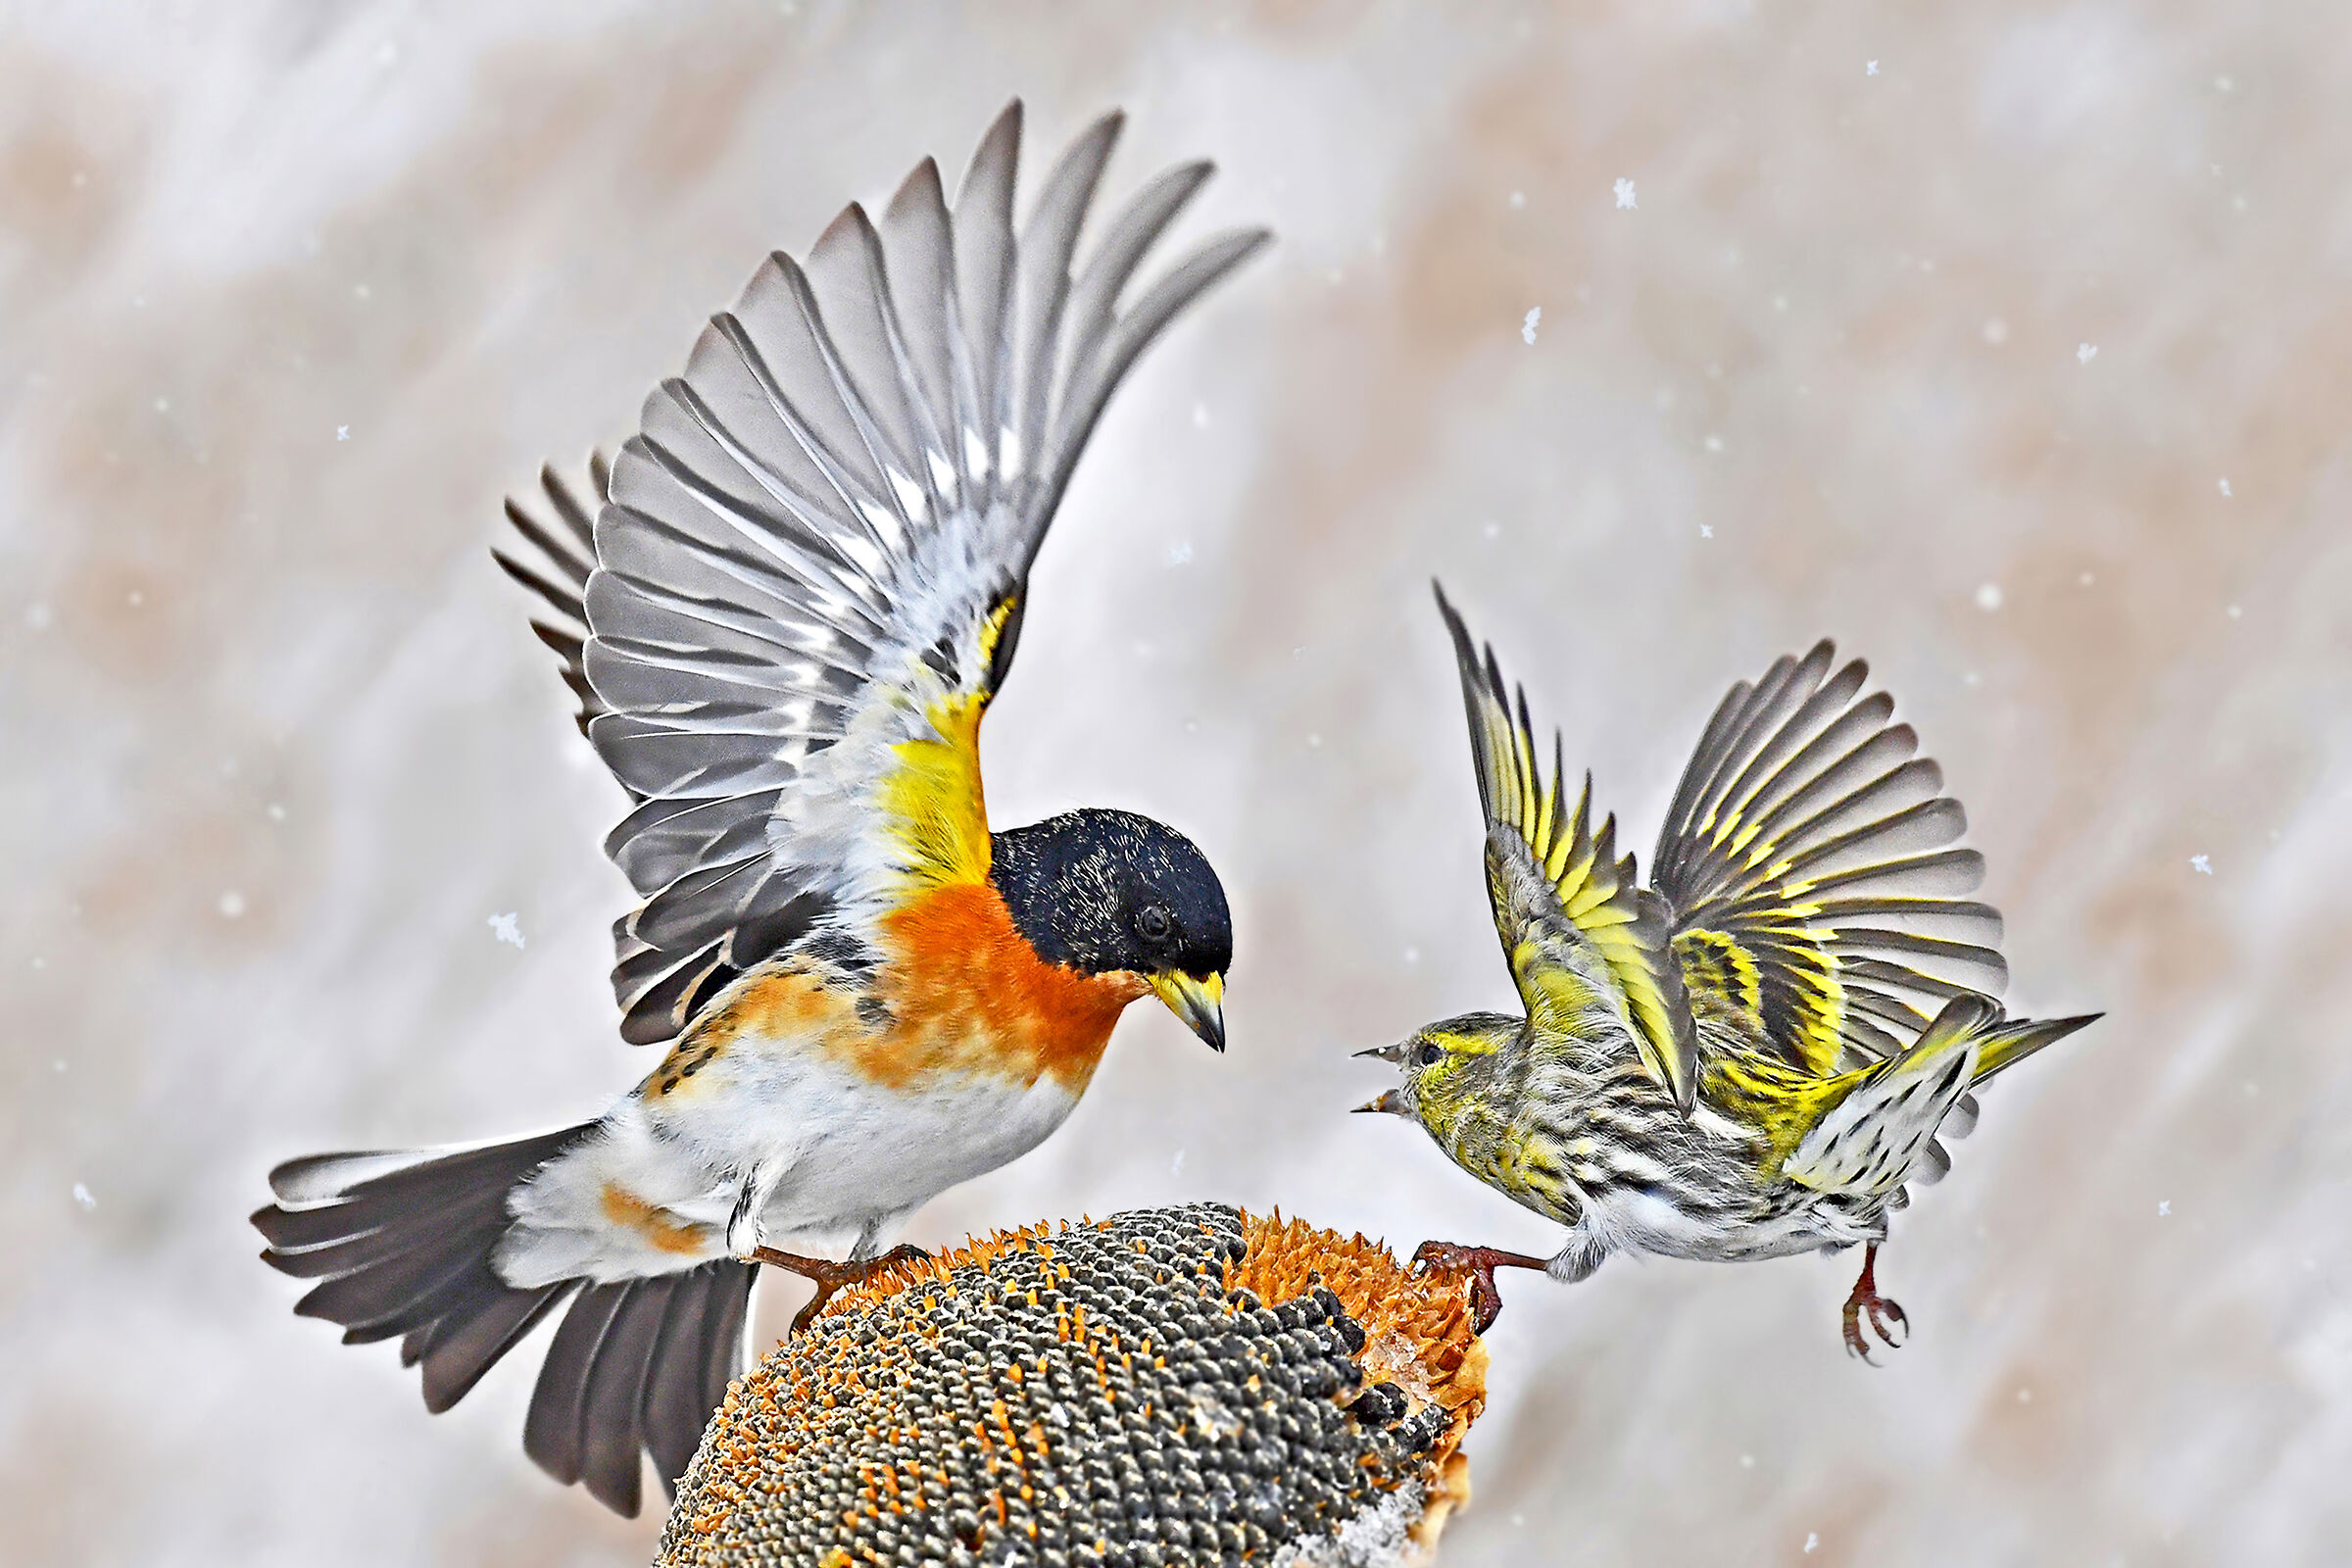 fight for food...